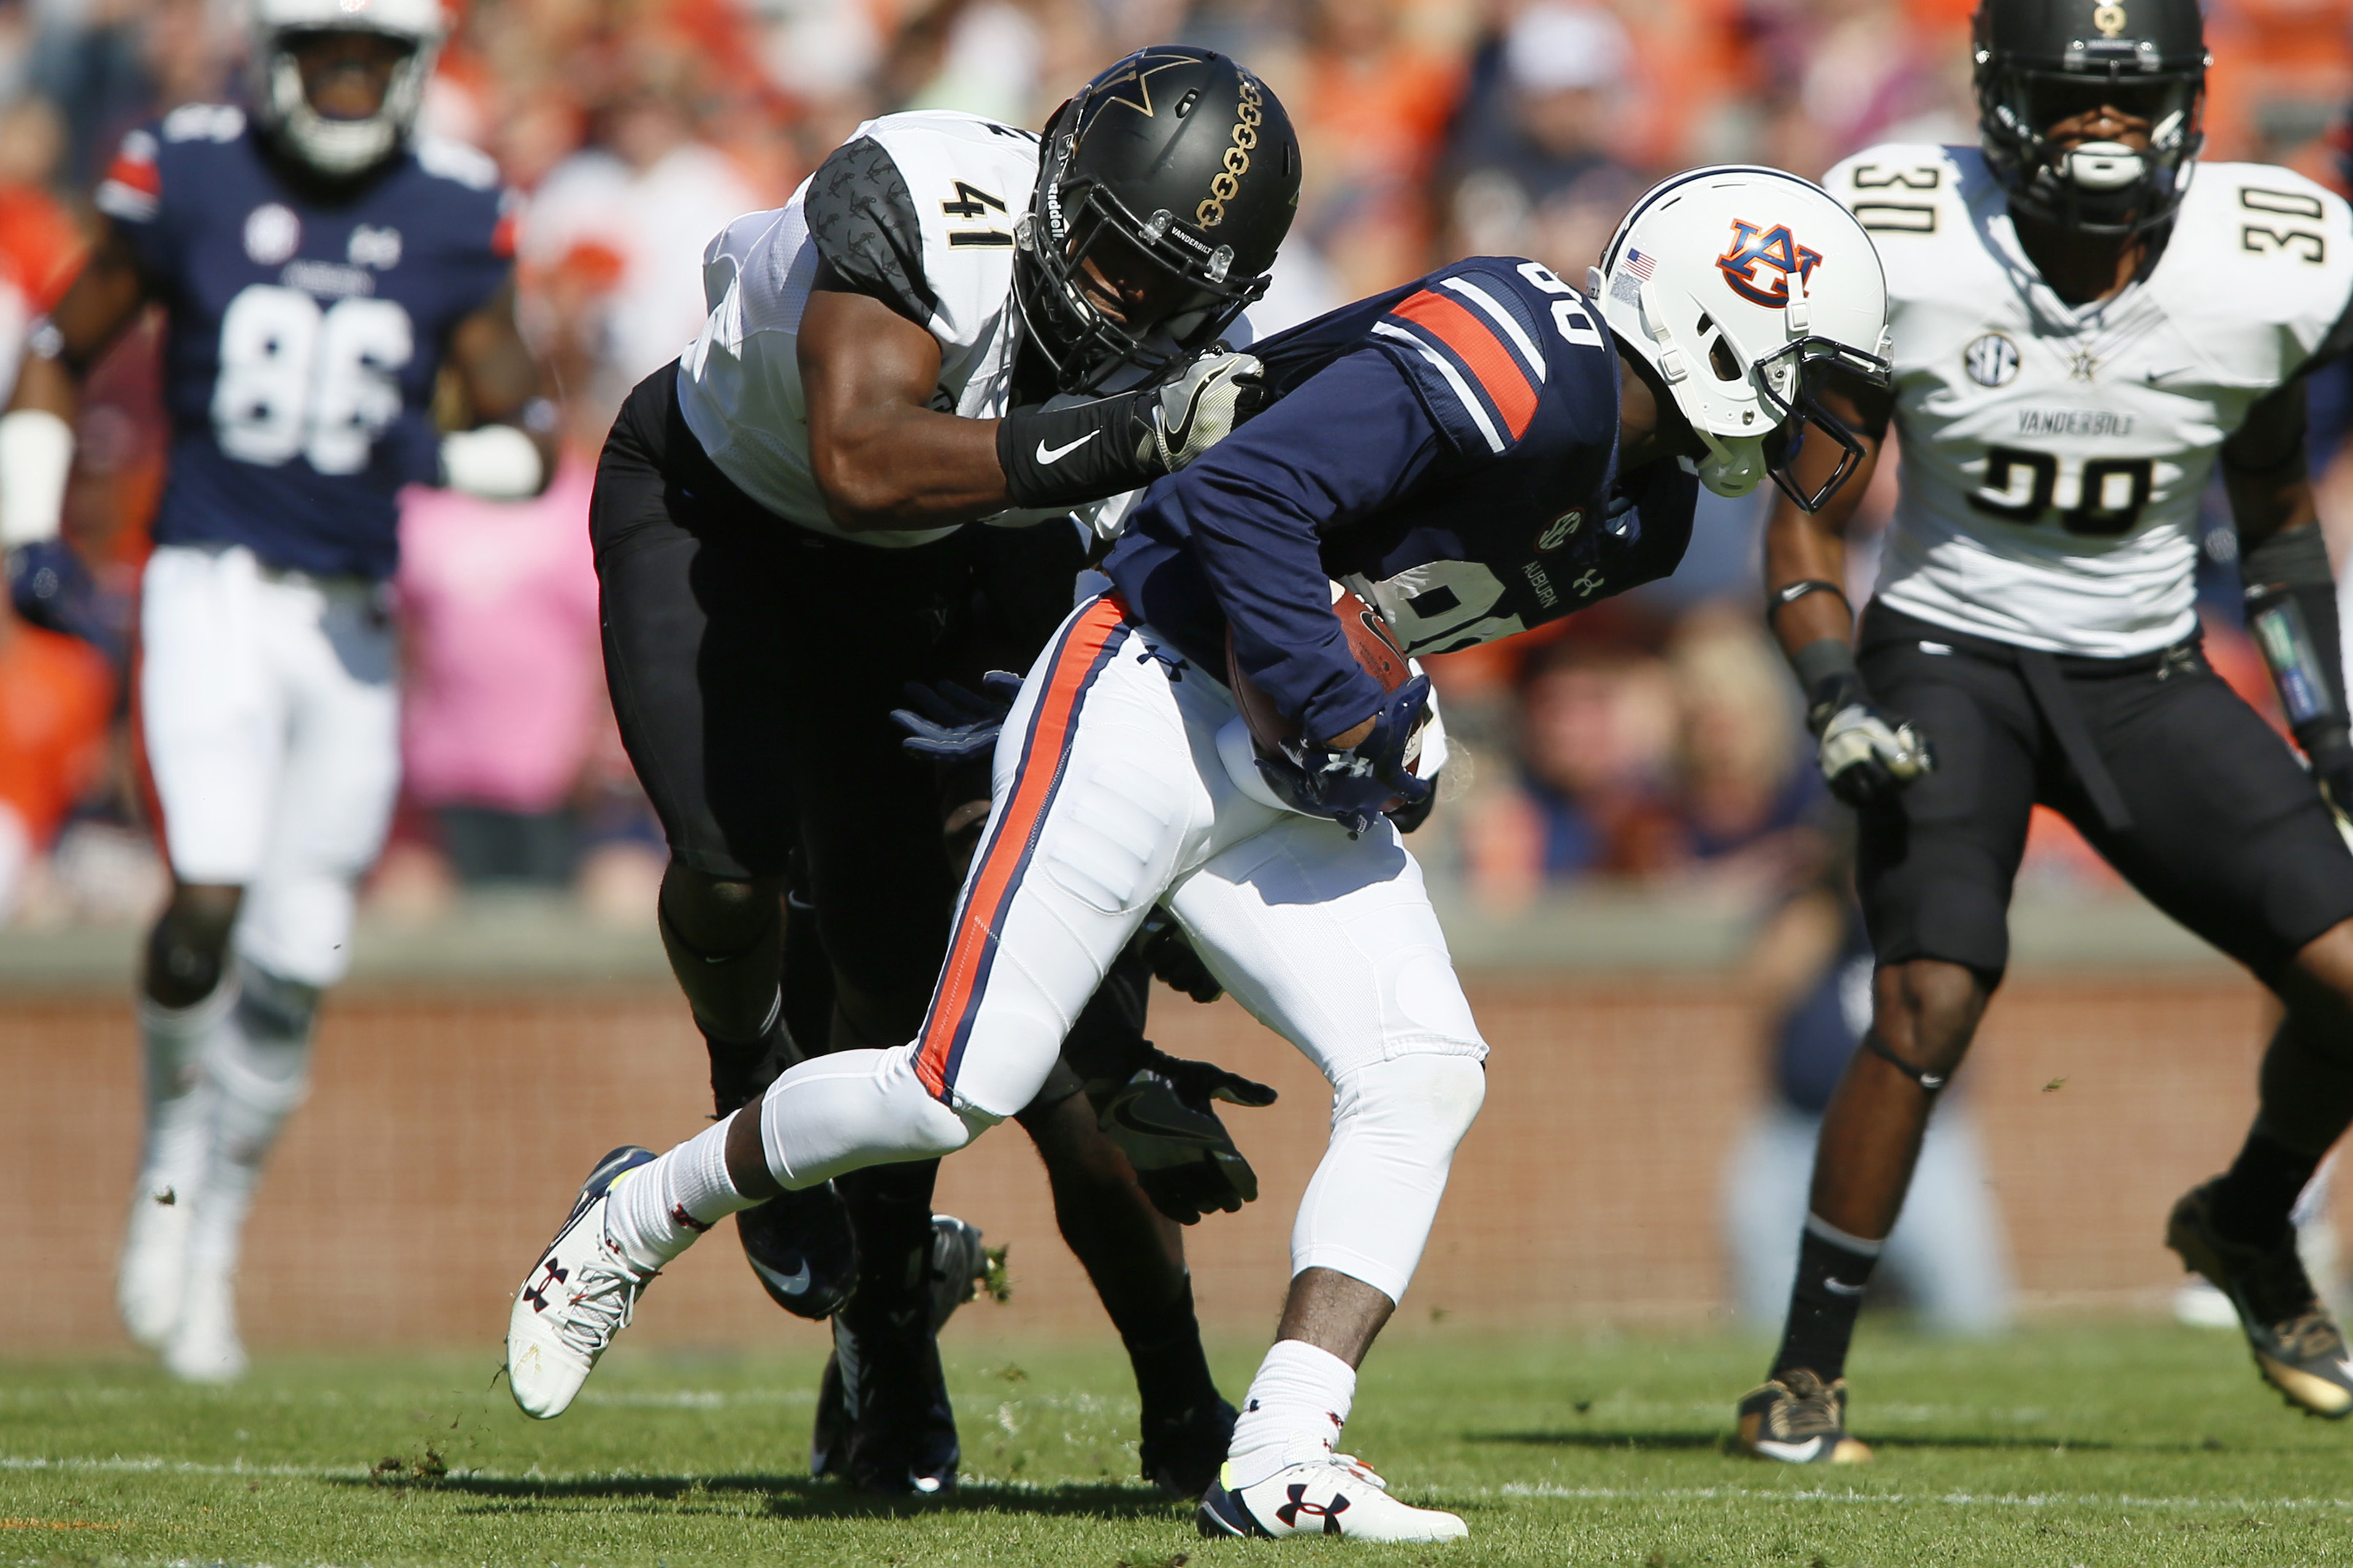 NCAA Football: Vanderbilt at Auburn